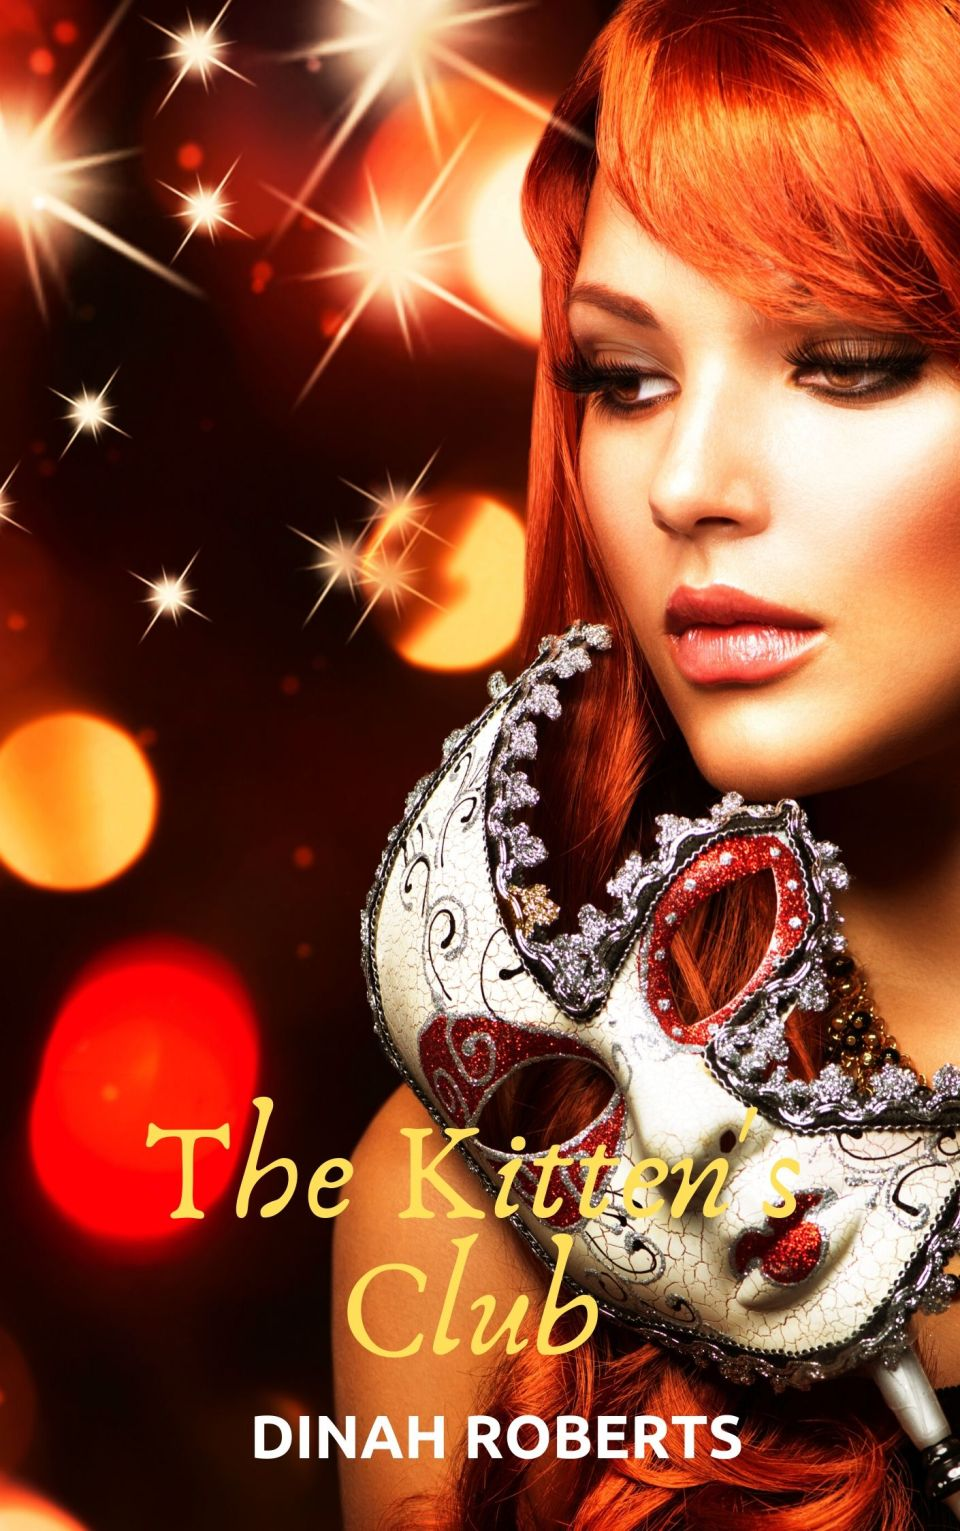 The Kitten's Club Book Cover